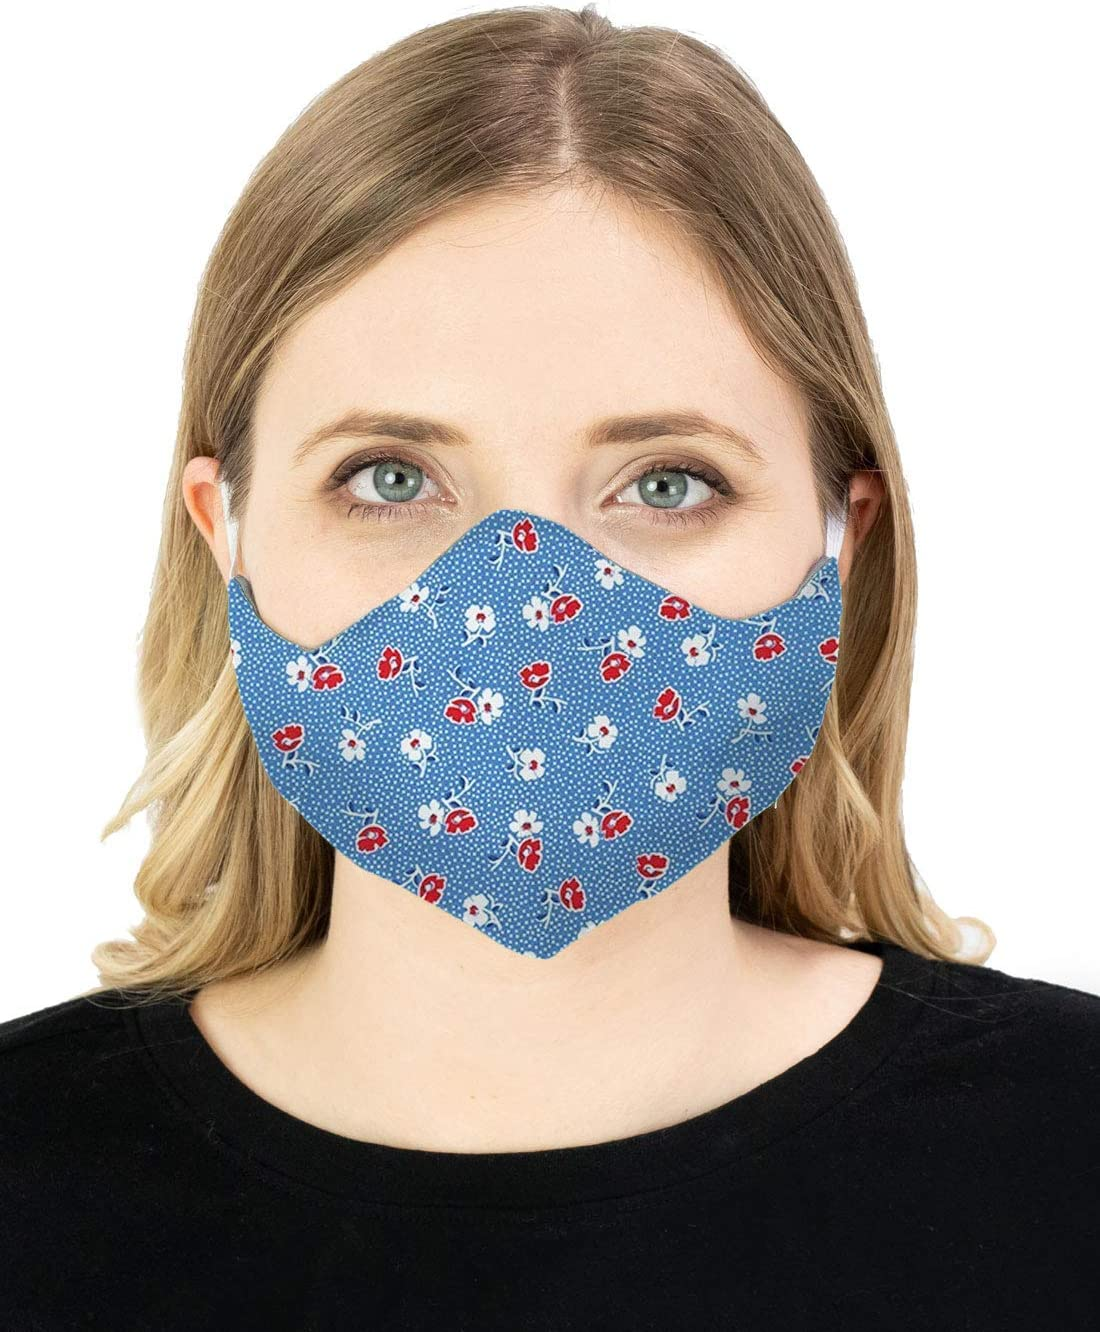 Face Mask Reversible Protect Mouth Nose USA Reusable Cotton Double Layer Unisex